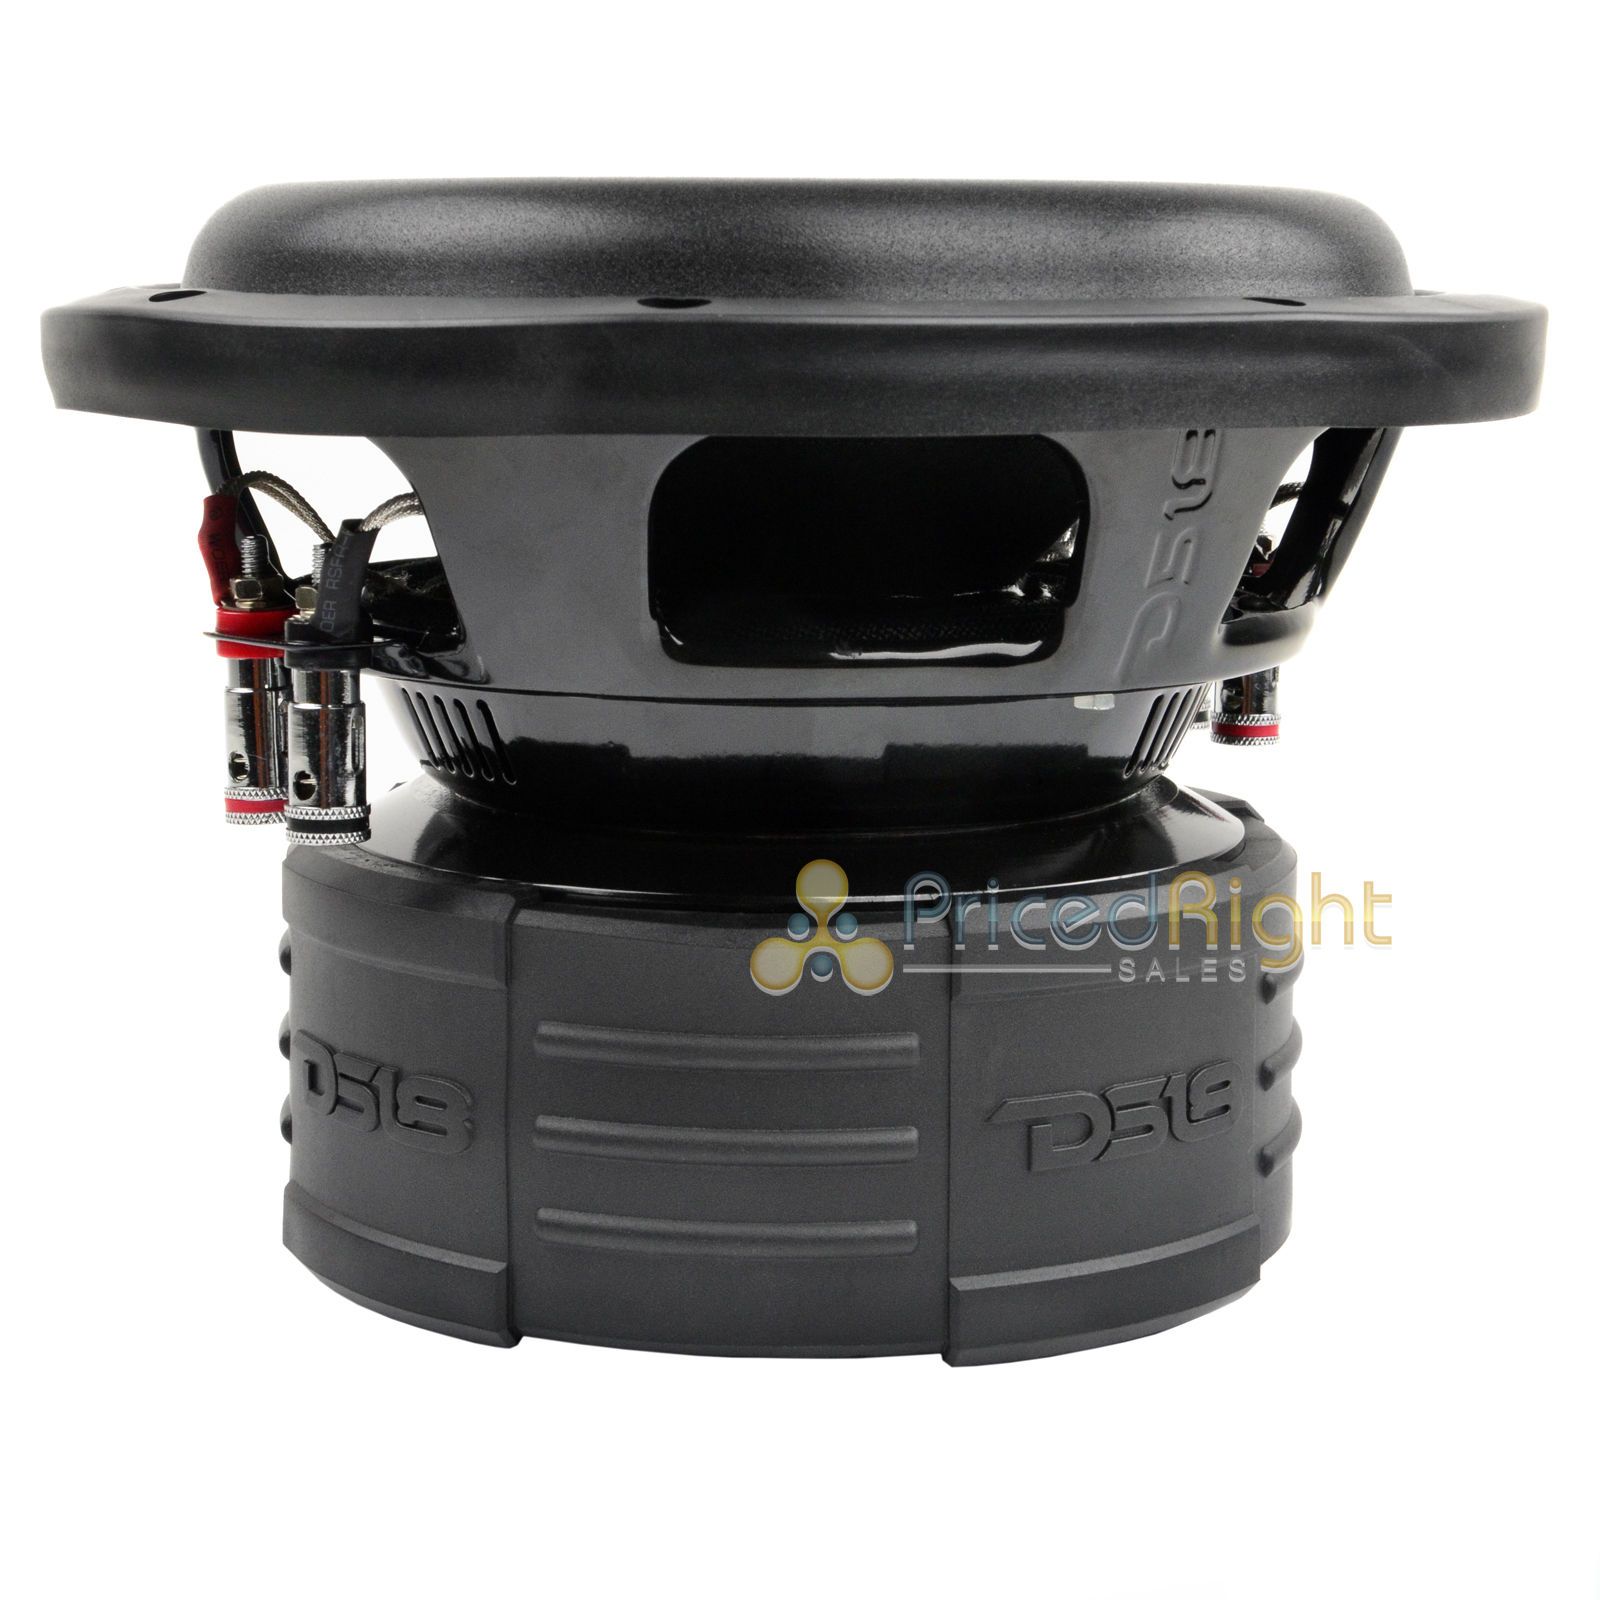 Details About Ds18 Elite Z8 8 Subwoofer Dual 4 Ohm 900 Watts Max Bass Sub Speaker Car Wiring Subwoofers Speakers To Change Ohms